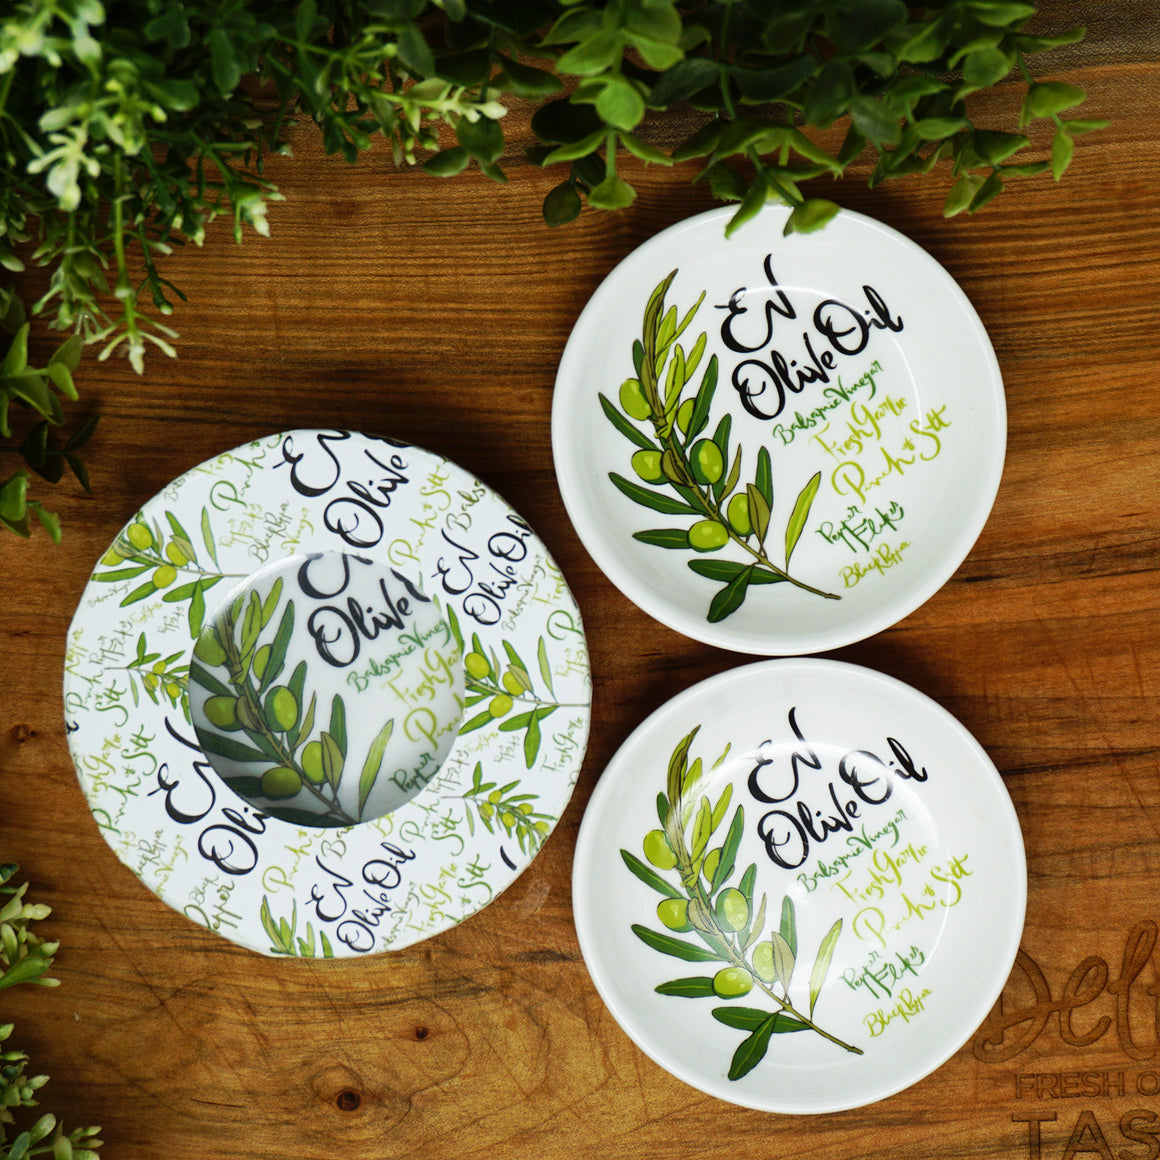 Della Terra- Oil and Balsamic Dipping Plates - Set of 2